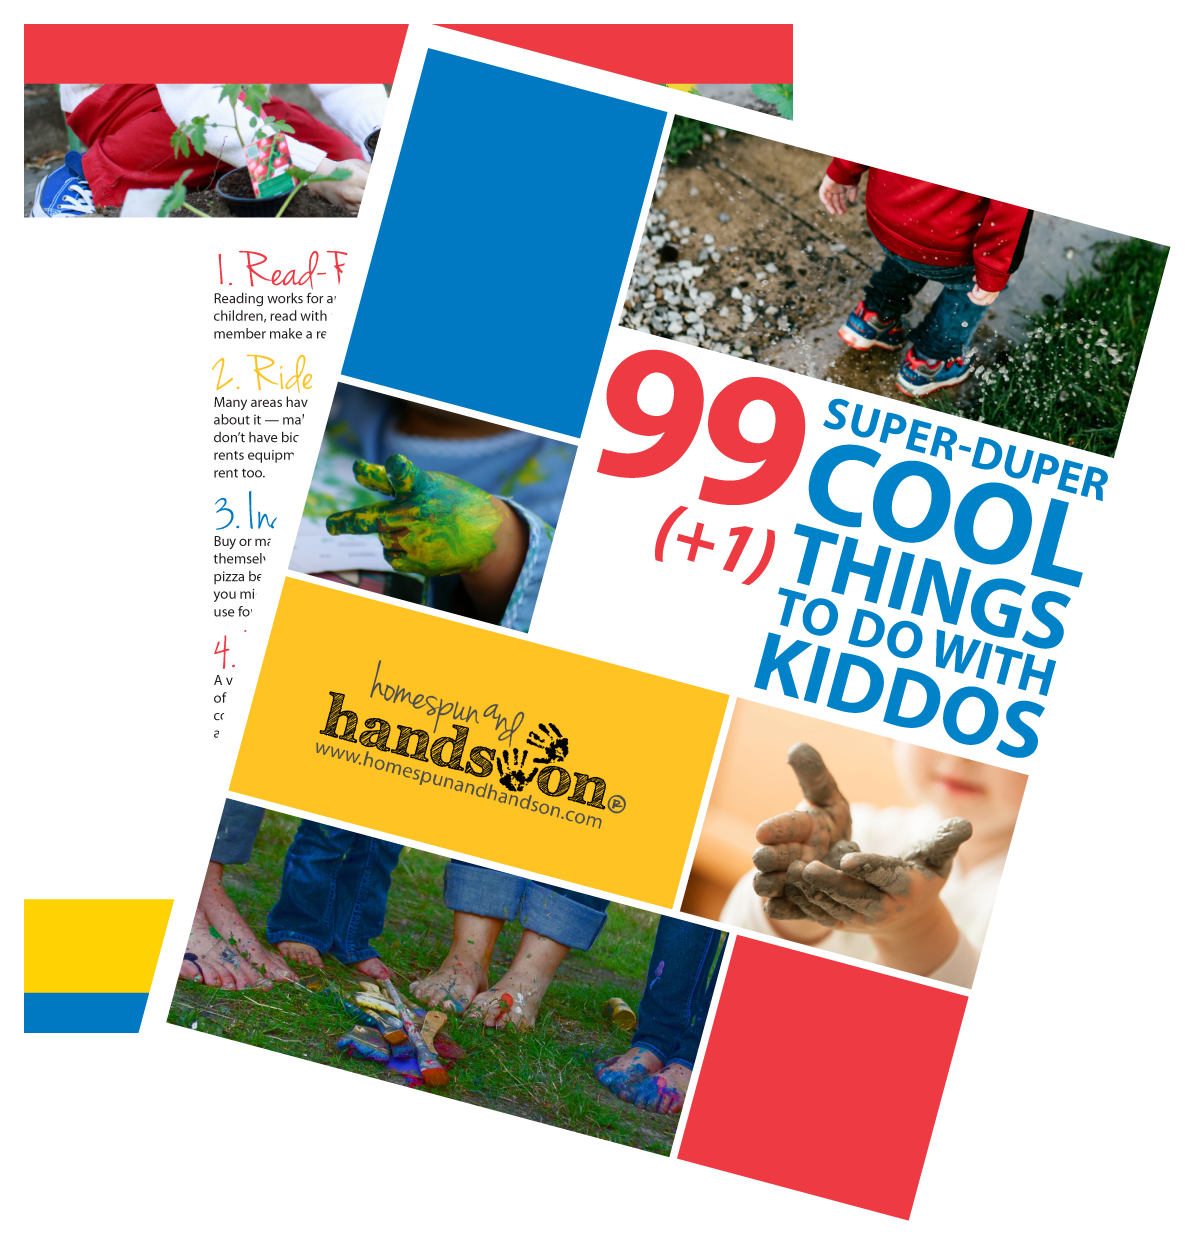 eBook 99 Super-Duper Cool Things to Do with Kiddos